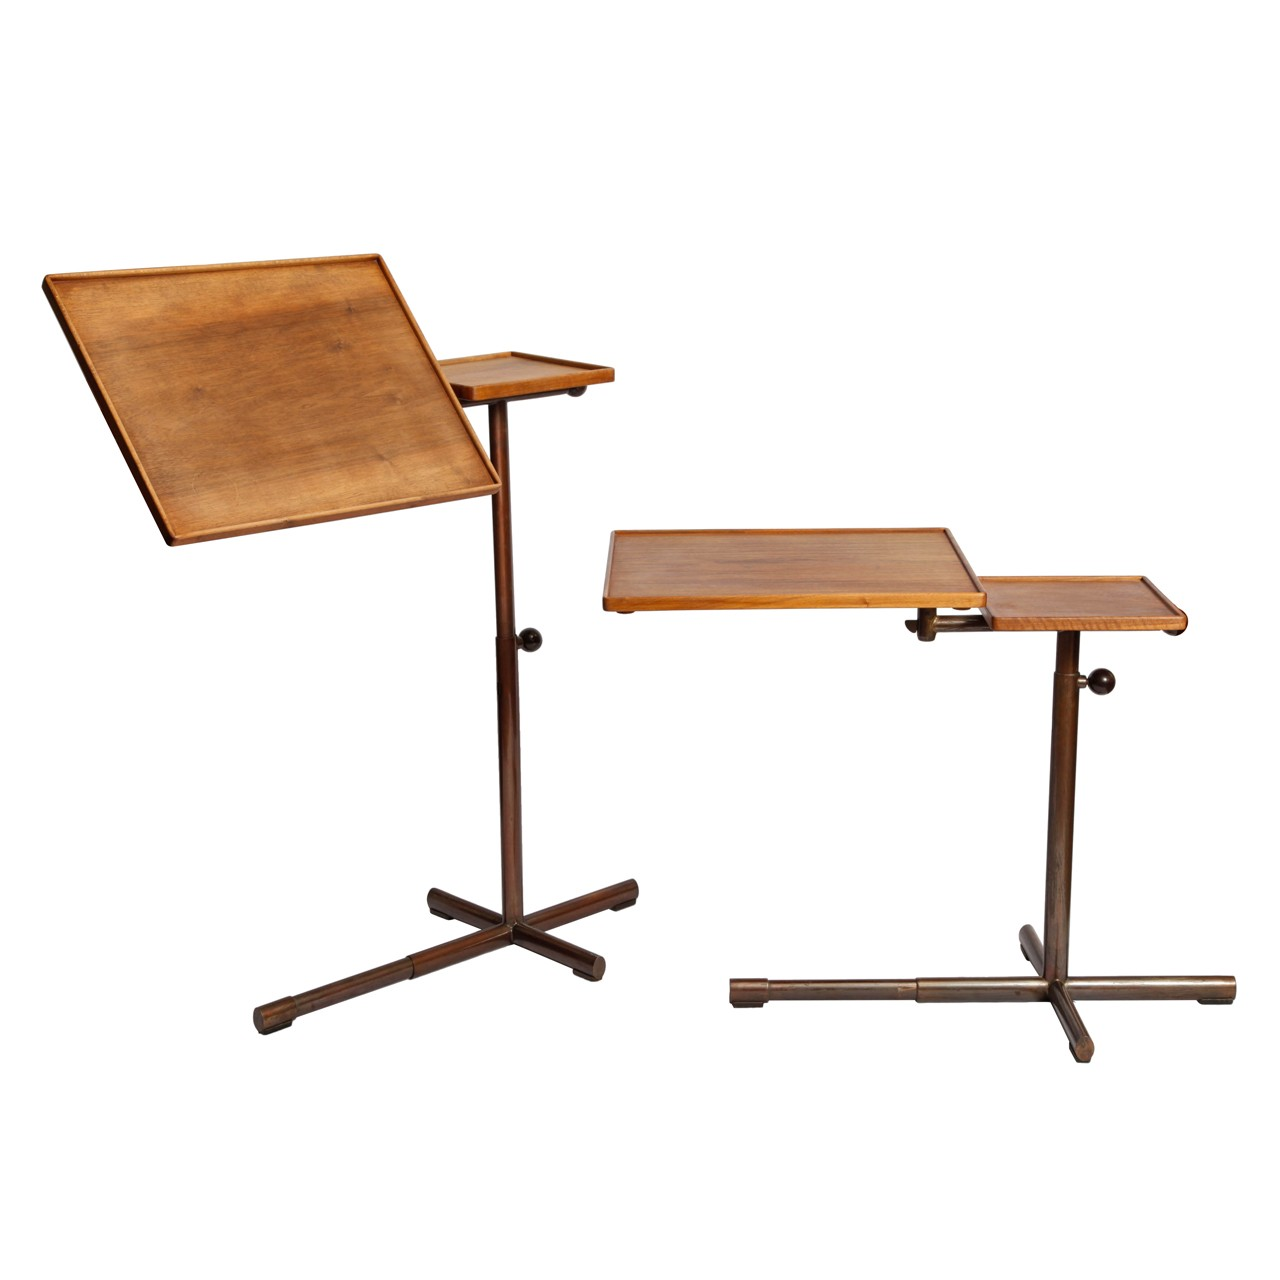 Pair of work tables by François Caruelle